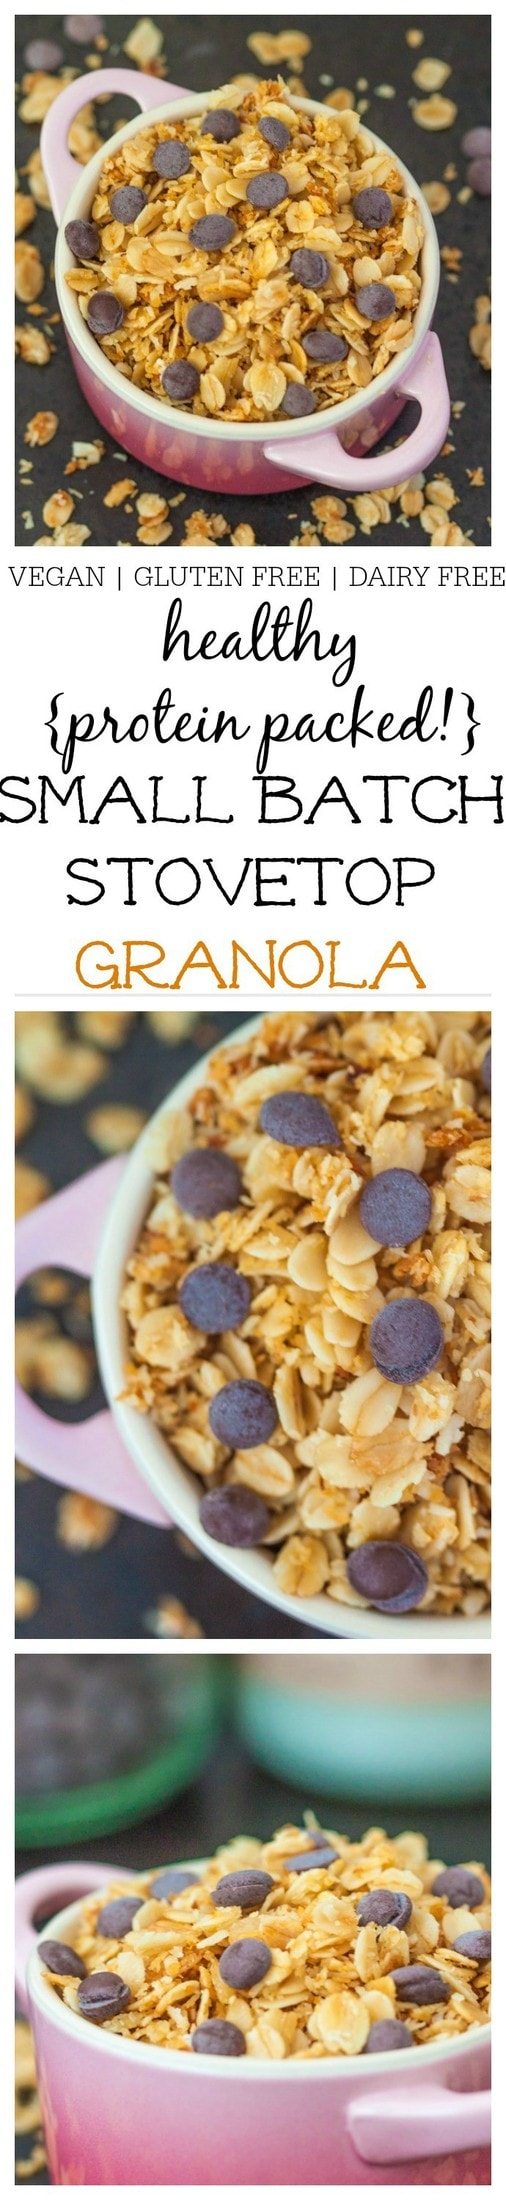 Healthy Small Batch Stovetop Granola- A delicious vegan, dairy free and gluten free granola made over the stove which takes less than 10 minutes and is single serving! High in protein, low in added sugar and perfect on top of a dairy free yogurt or milk for a balanced meal @thebigmansworld - thebigmansworld.com